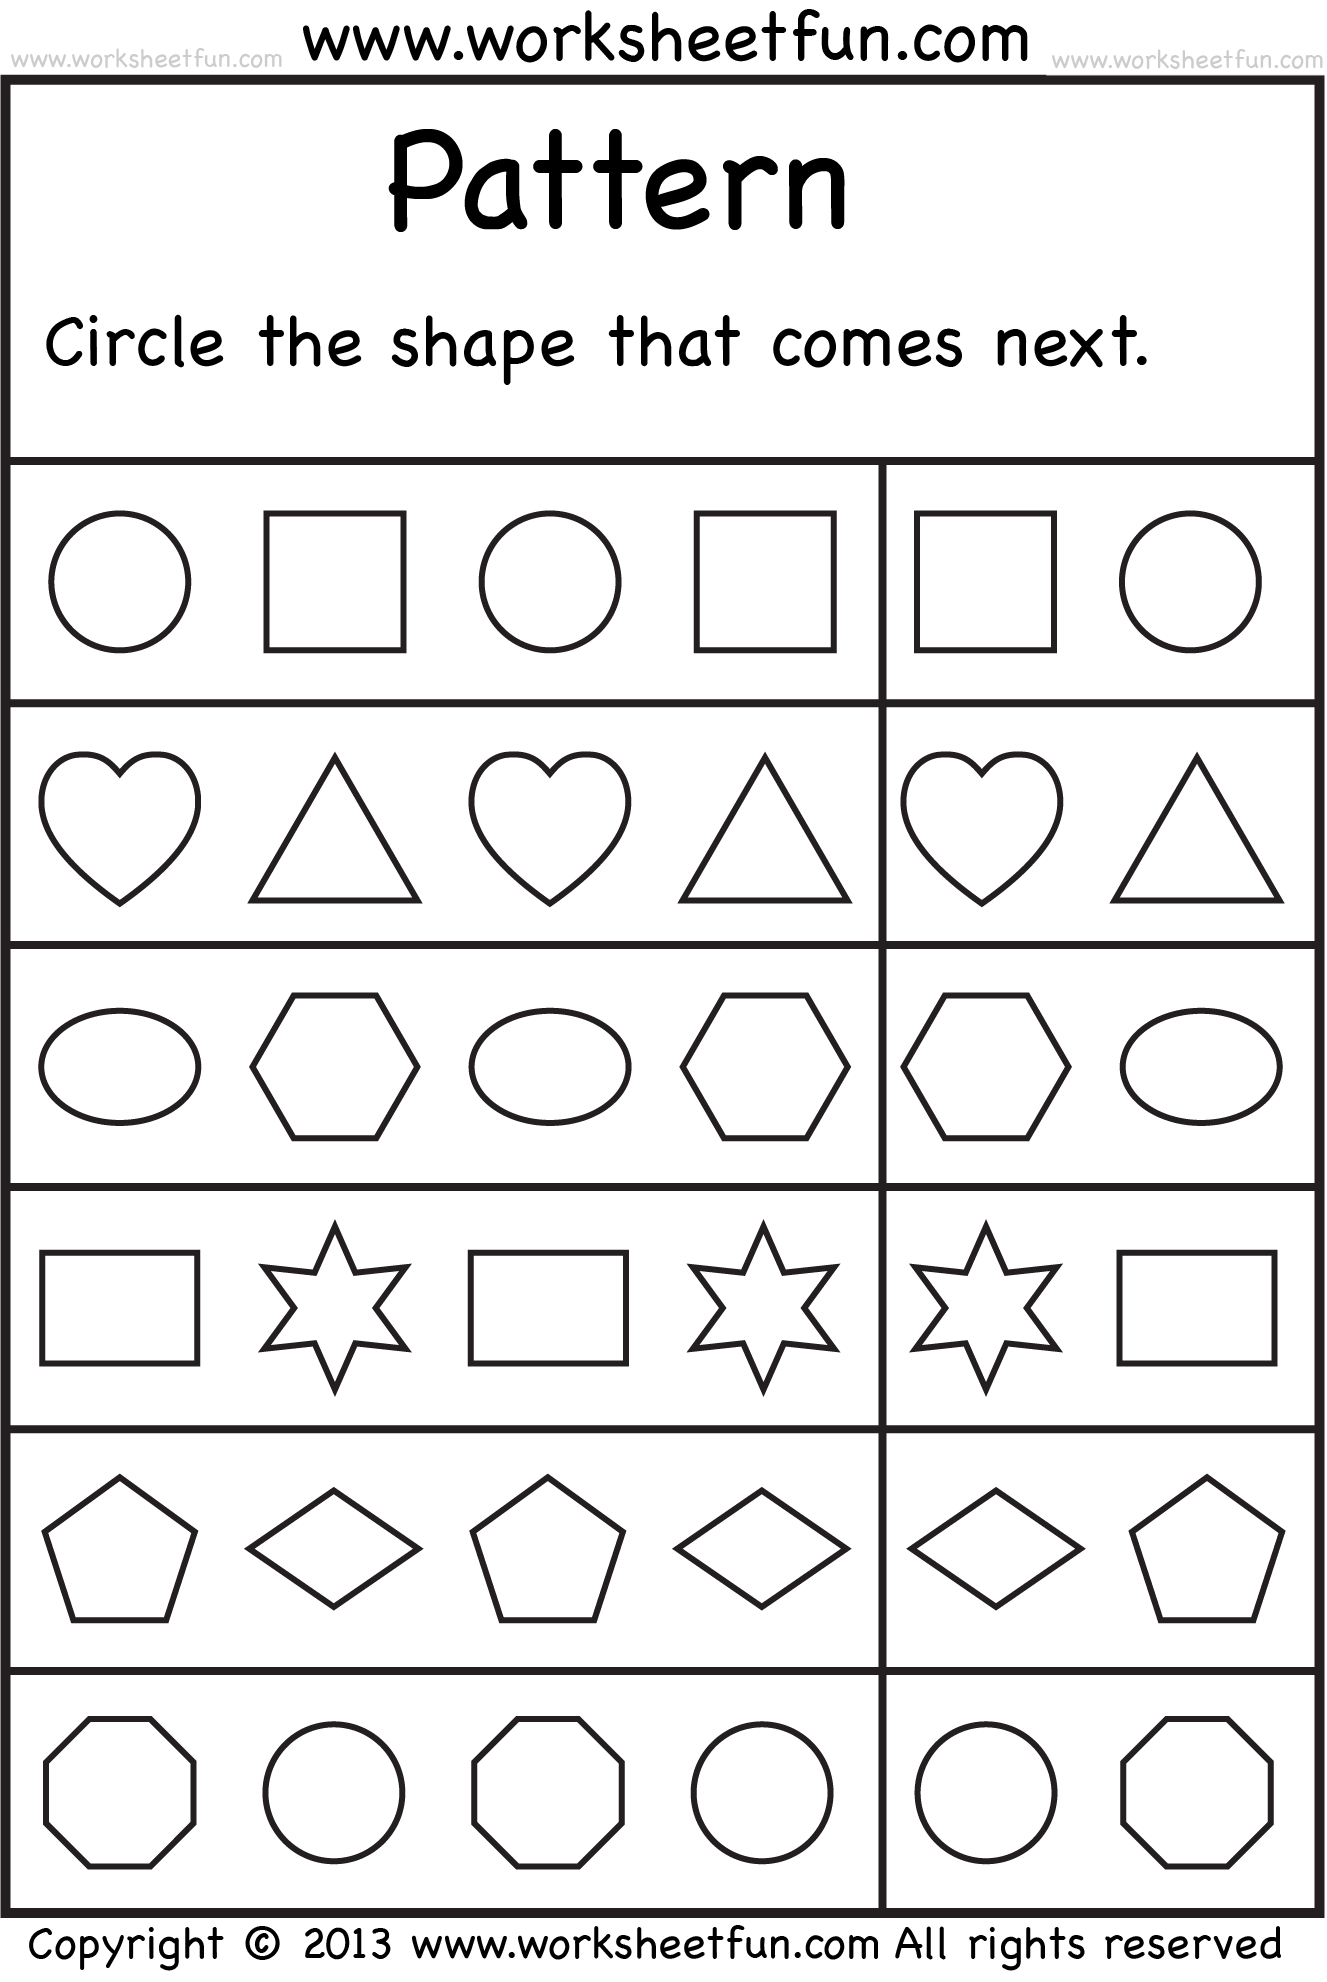 Weirdmailus  Terrific  Images About School Worksheets On Pinterest  Number Words  With Luxury  Images About School Worksheets On Pinterest  Number Words Alphabet Worksheets And Free Printable Kindergarten Worksheets With Attractive Pronoun Worksheets Free Also Chemical Compound Worksheet In Addition Free Printable Geometry Worksheets For High School And Number Of The Day Worksheets As Well As Consonant Blend Worksheet Additionally Palm Sunday Worksheets From Pinterestcom With Weirdmailus  Luxury  Images About School Worksheets On Pinterest  Number Words  With Attractive  Images About School Worksheets On Pinterest  Number Words Alphabet Worksheets And Free Printable Kindergarten Worksheets And Terrific Pronoun Worksheets Free Also Chemical Compound Worksheet In Addition Free Printable Geometry Worksheets For High School From Pinterestcom